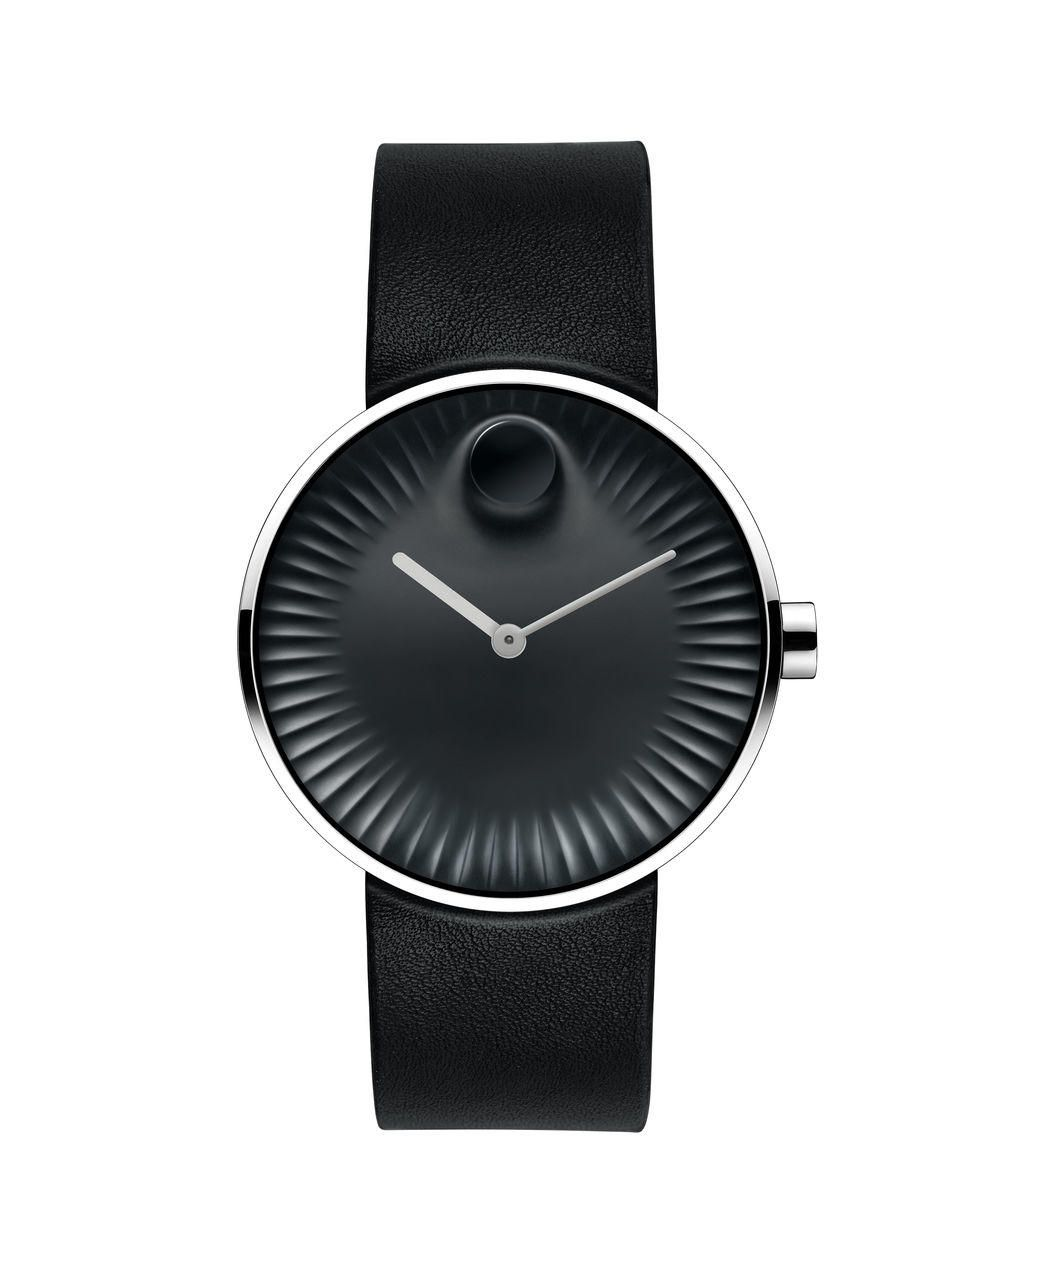 Yves Behar brings his design expertise to Movado's new Edge watch - Acquire